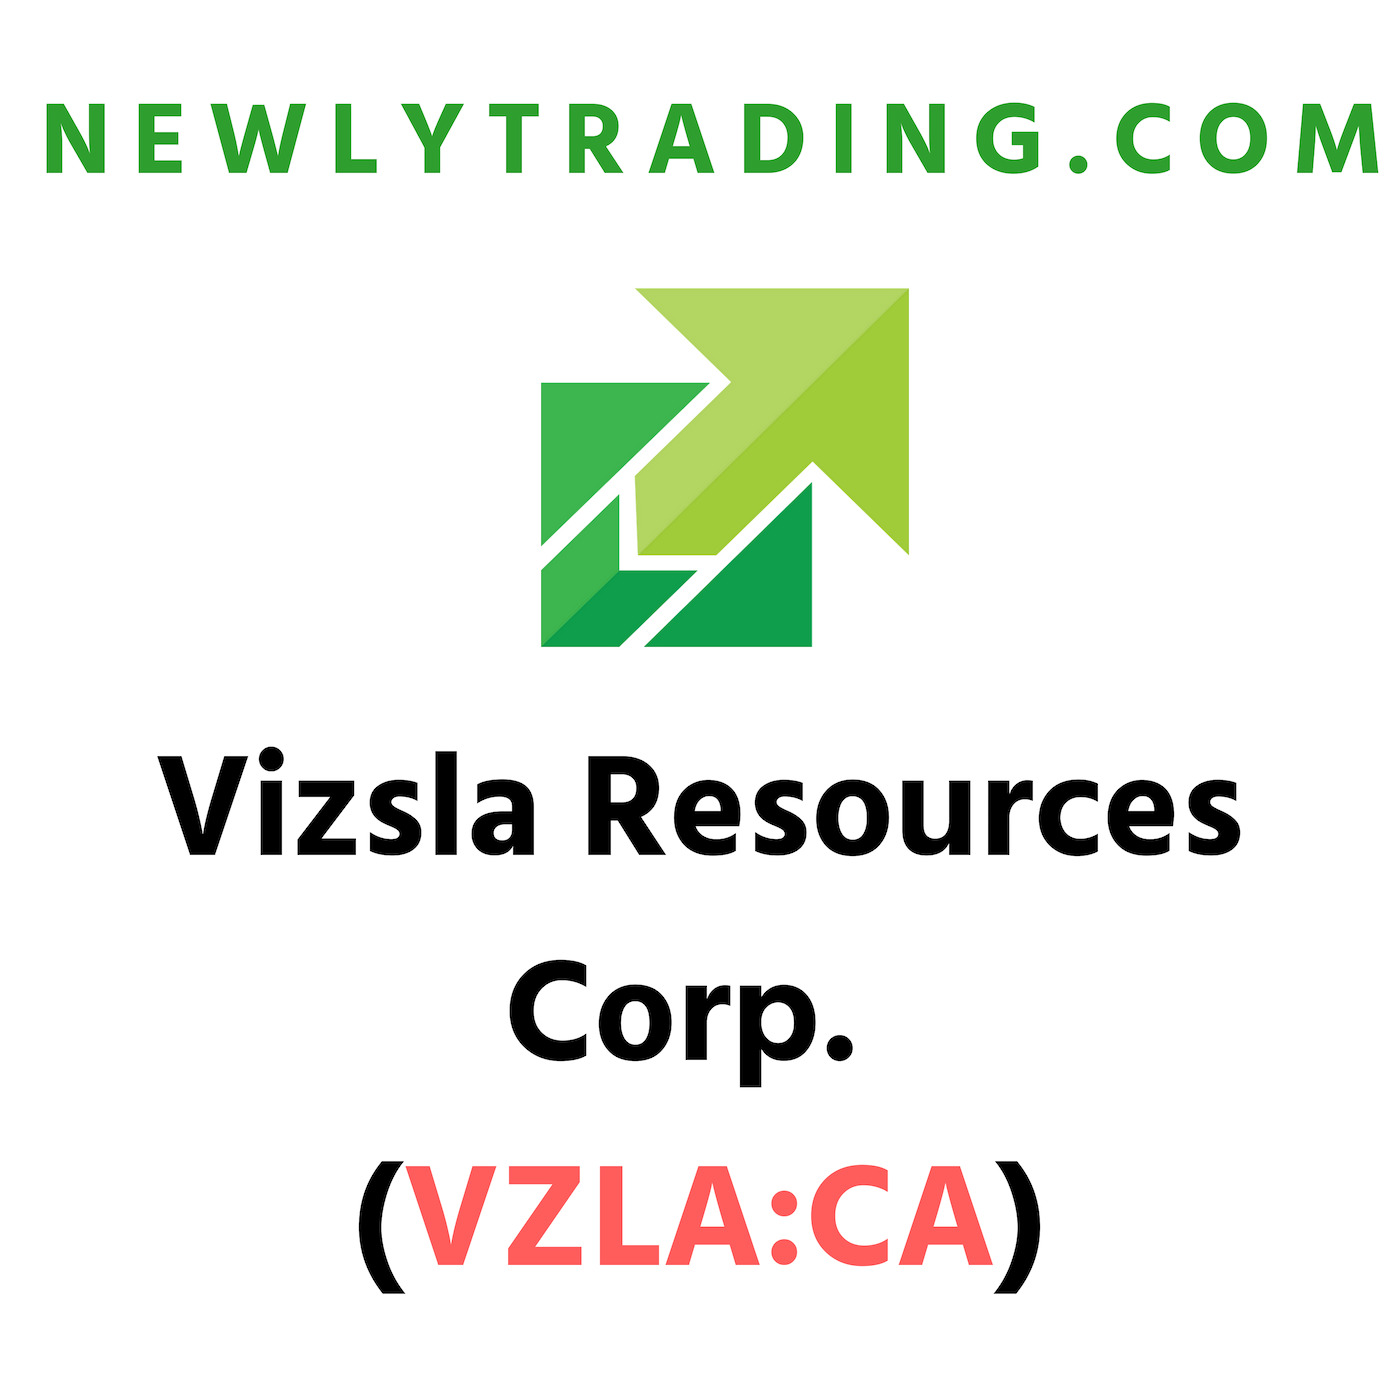 Vizsla Resources Corp. (VZLA:CA)